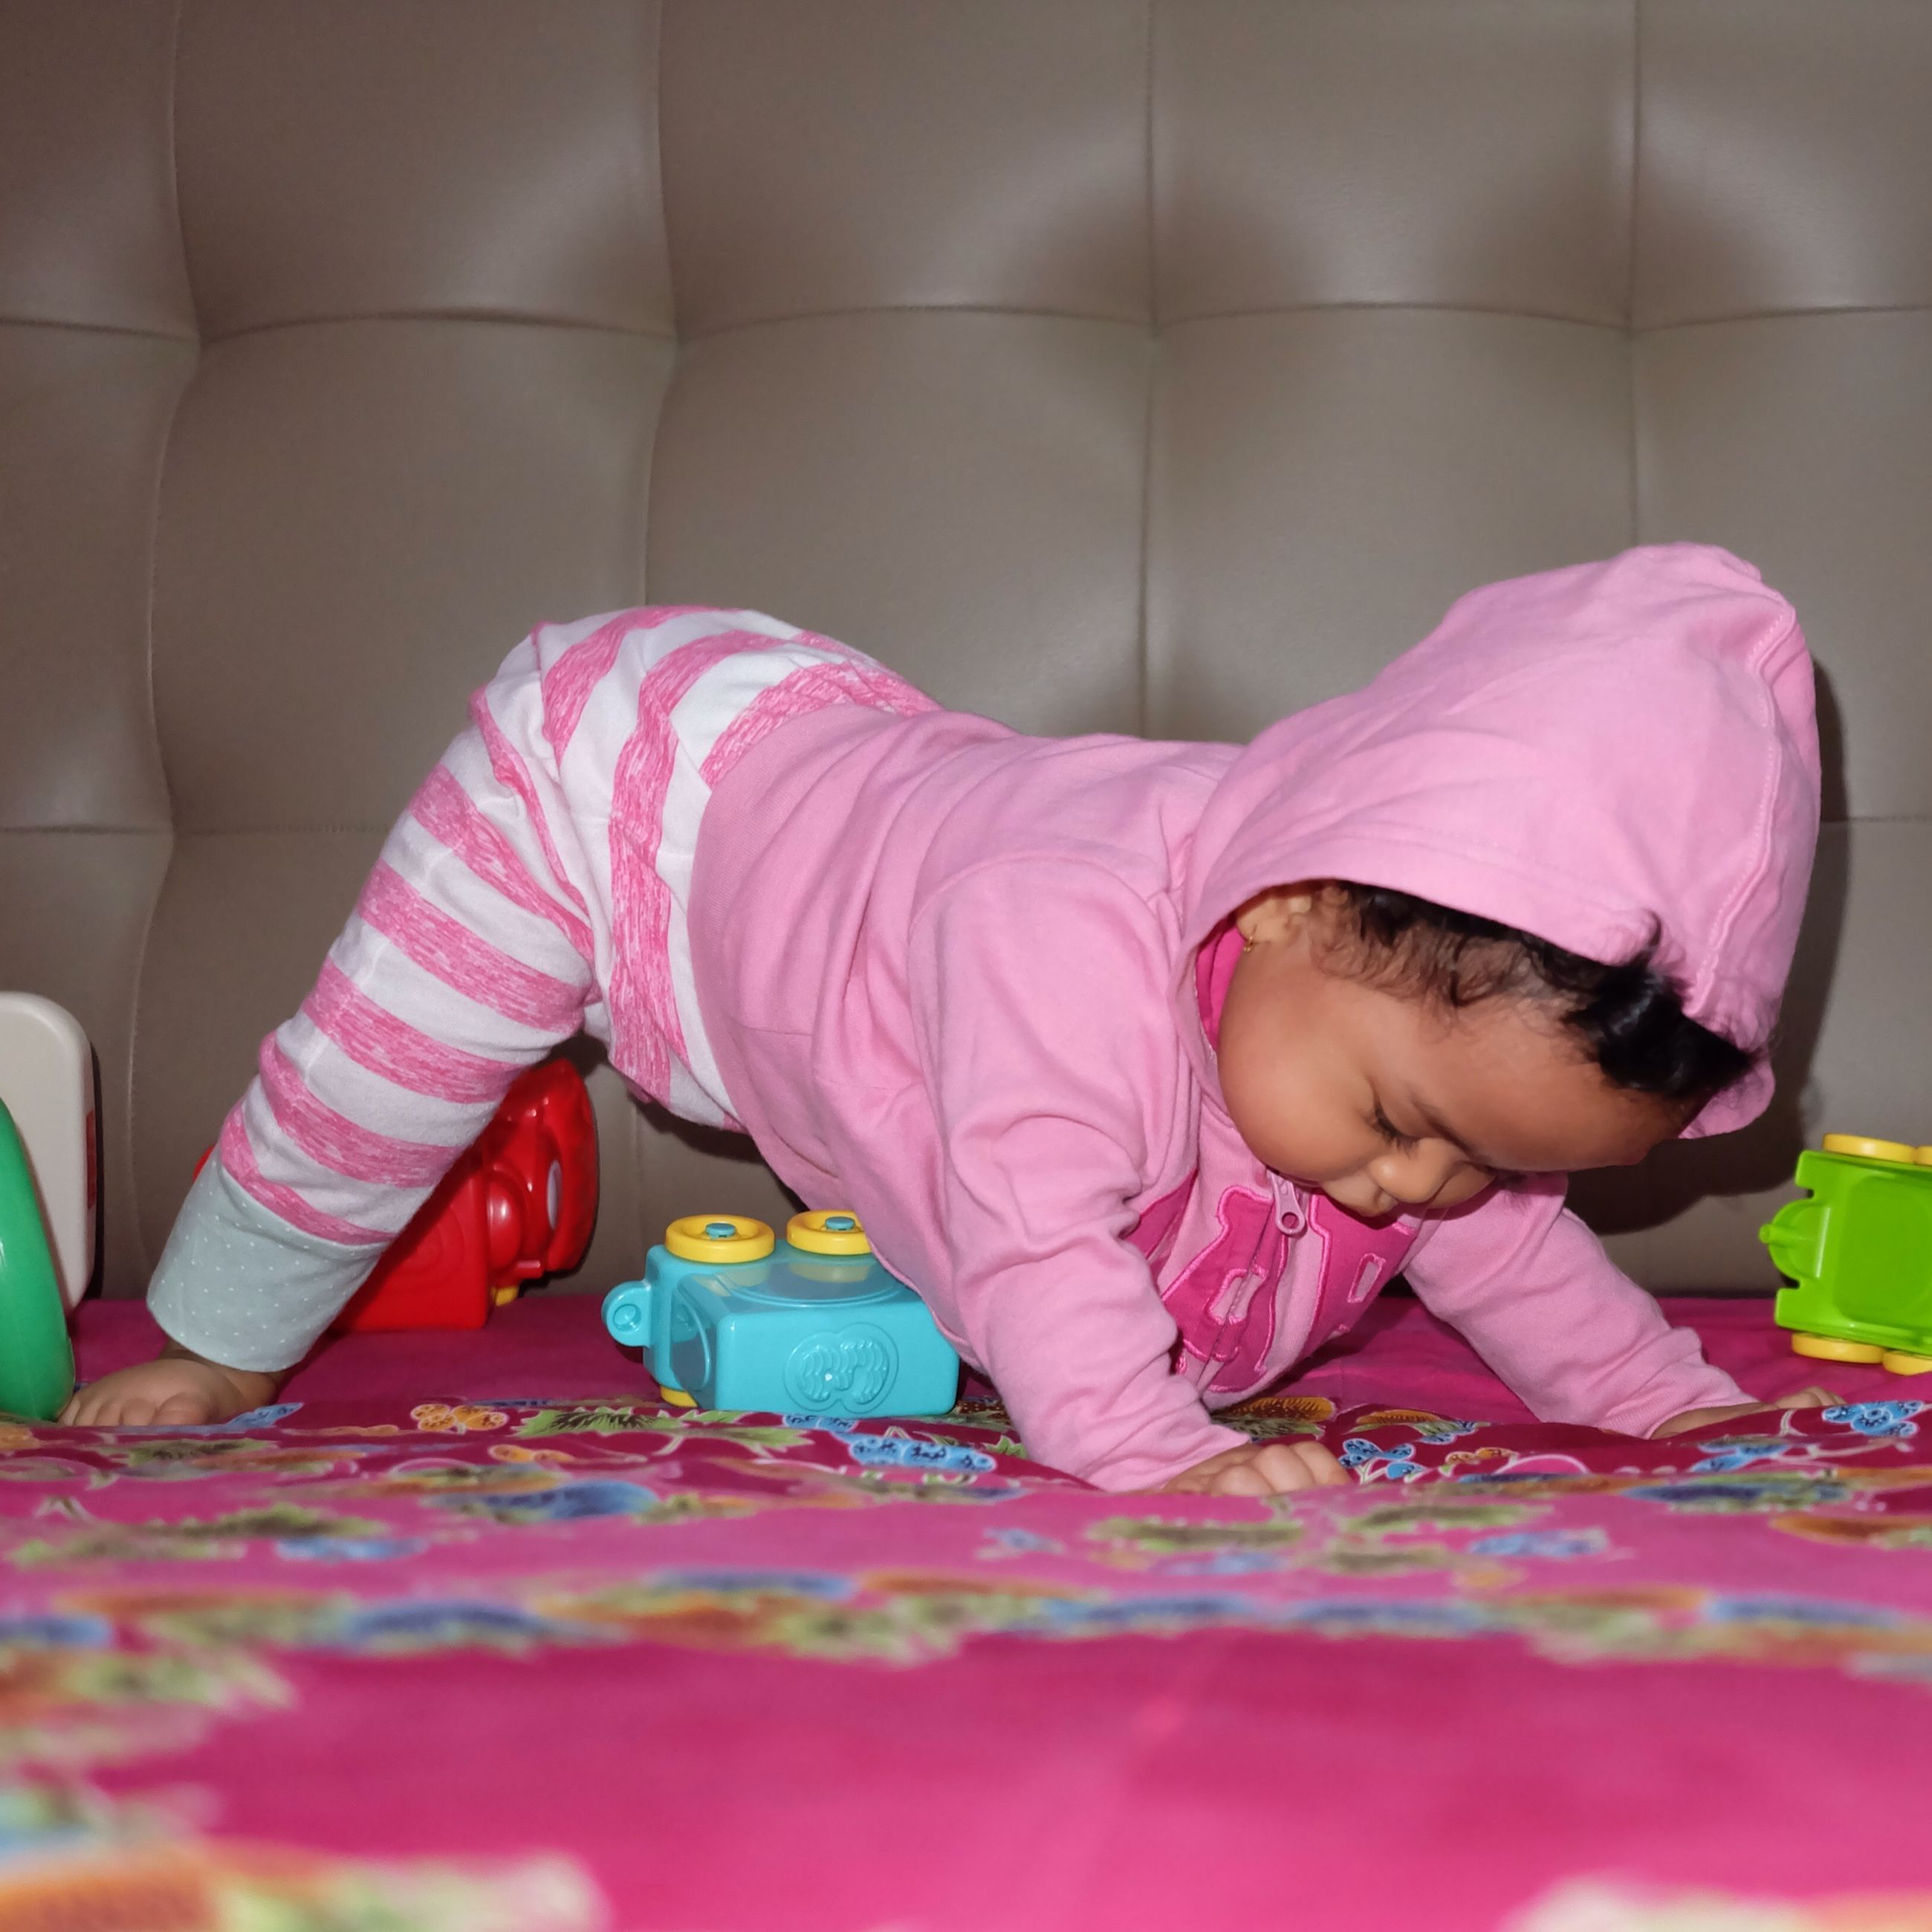 childhood, indoors, innocence, lifestyles, relaxation, elementary age, girls, person, leisure activity, boys, sitting, casual clothing, cute, full length, bed, lying down, sleeping